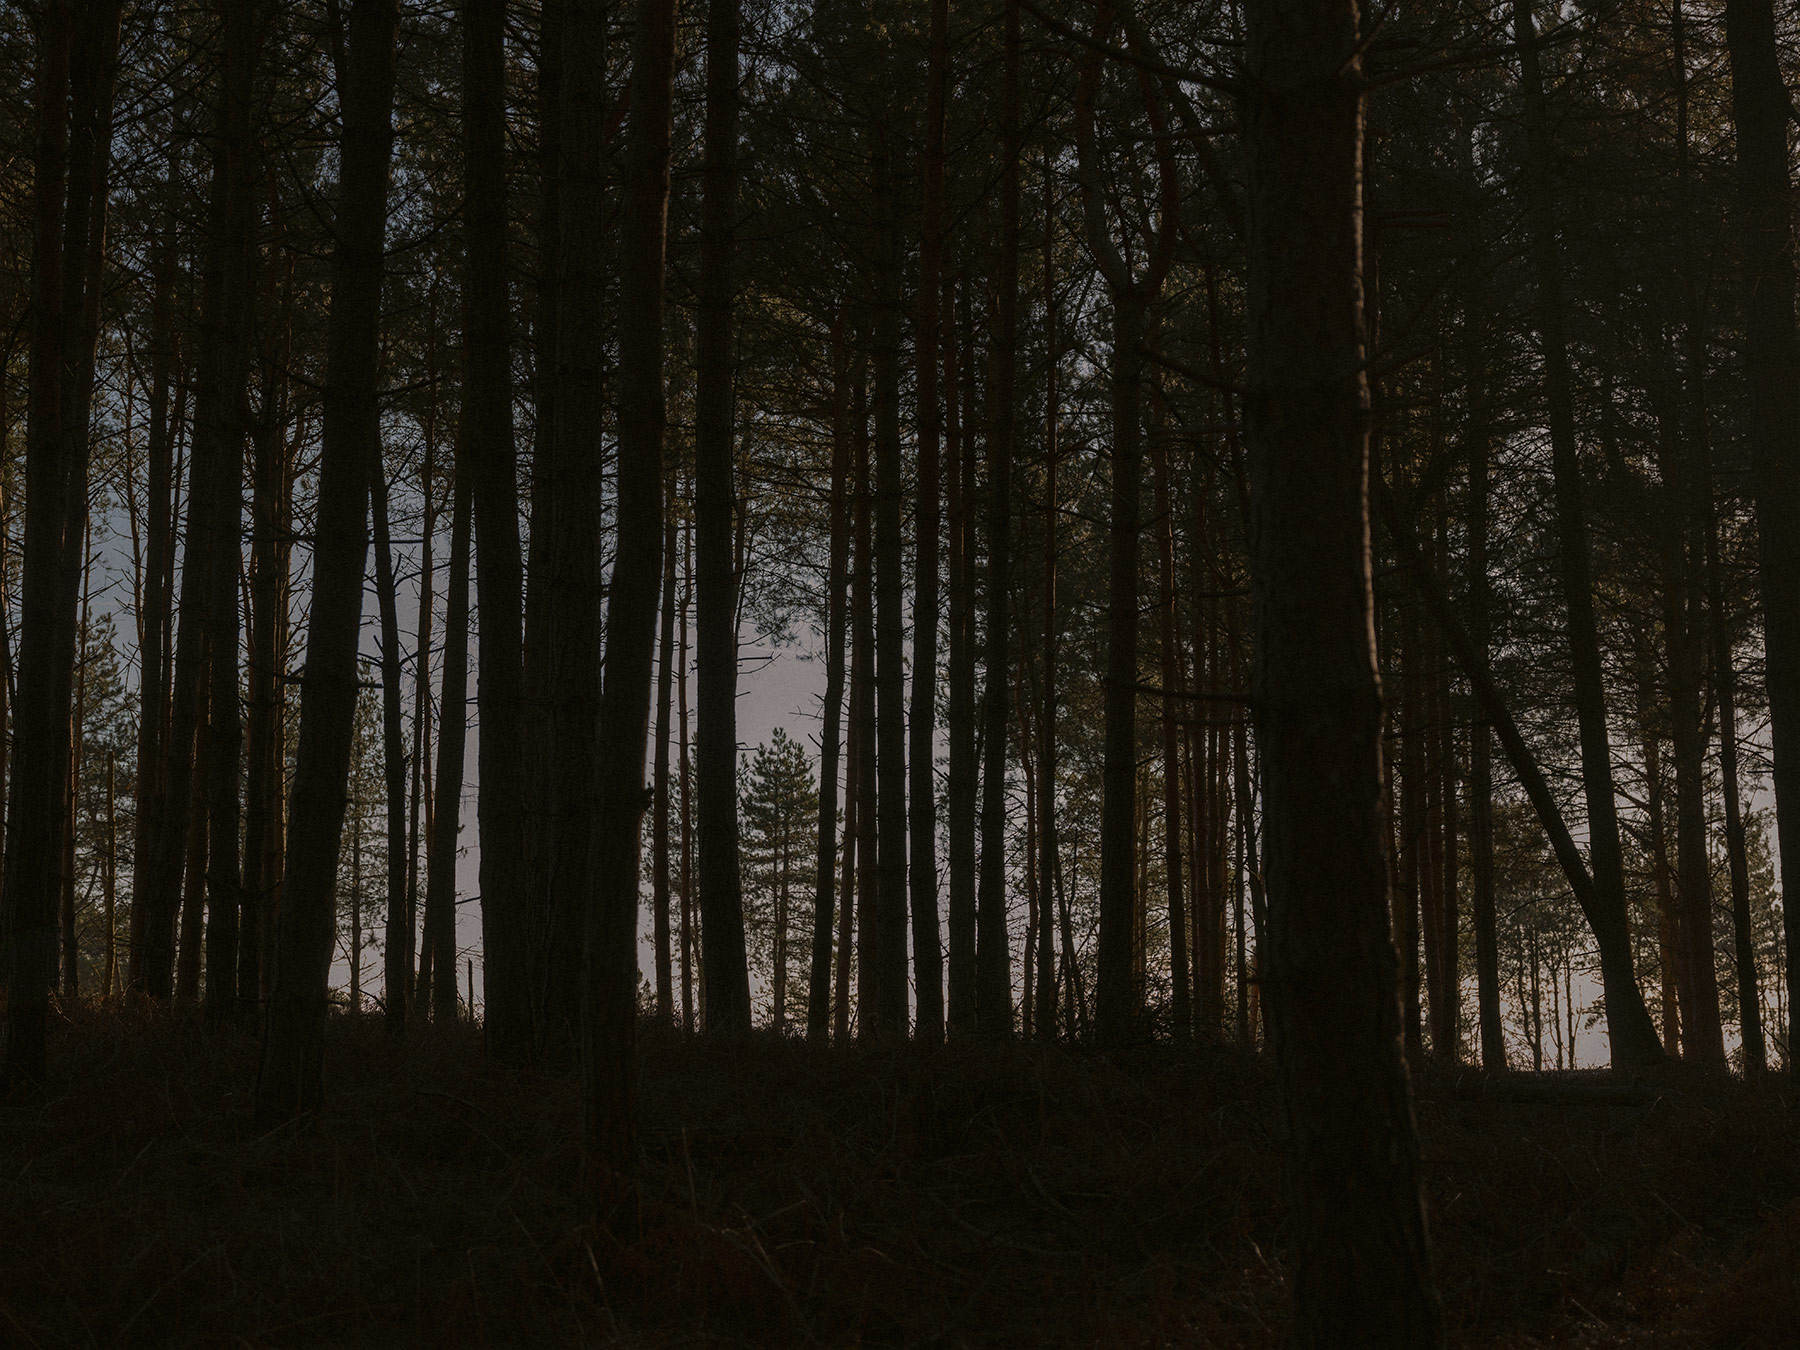 Good Boy Wolf Photographer, filmic landscape, dark trees in a wide forest with little light